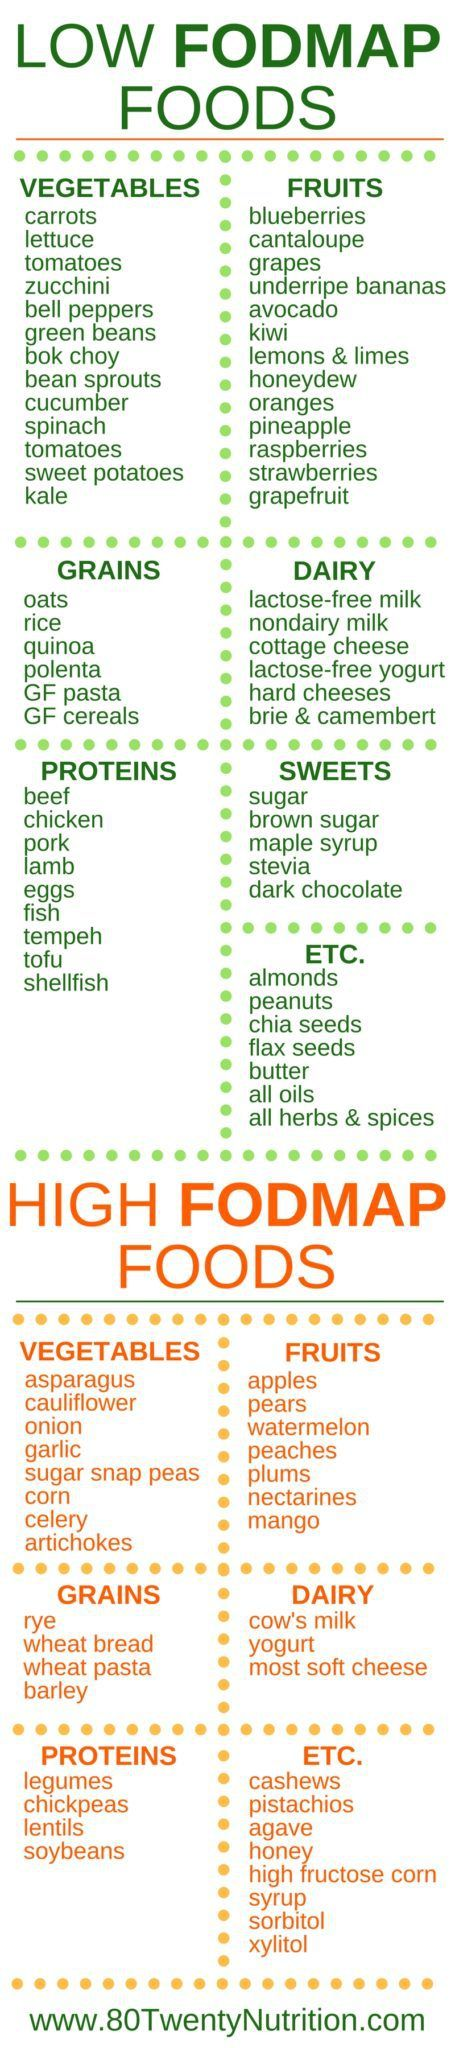 Wondering what to eat on the Low FODMAP Diet? Here's your guide! Click through to the blog post for everything you need to know about FODMAPs, including whether or not you need to follow the Low FODMAP Diet!